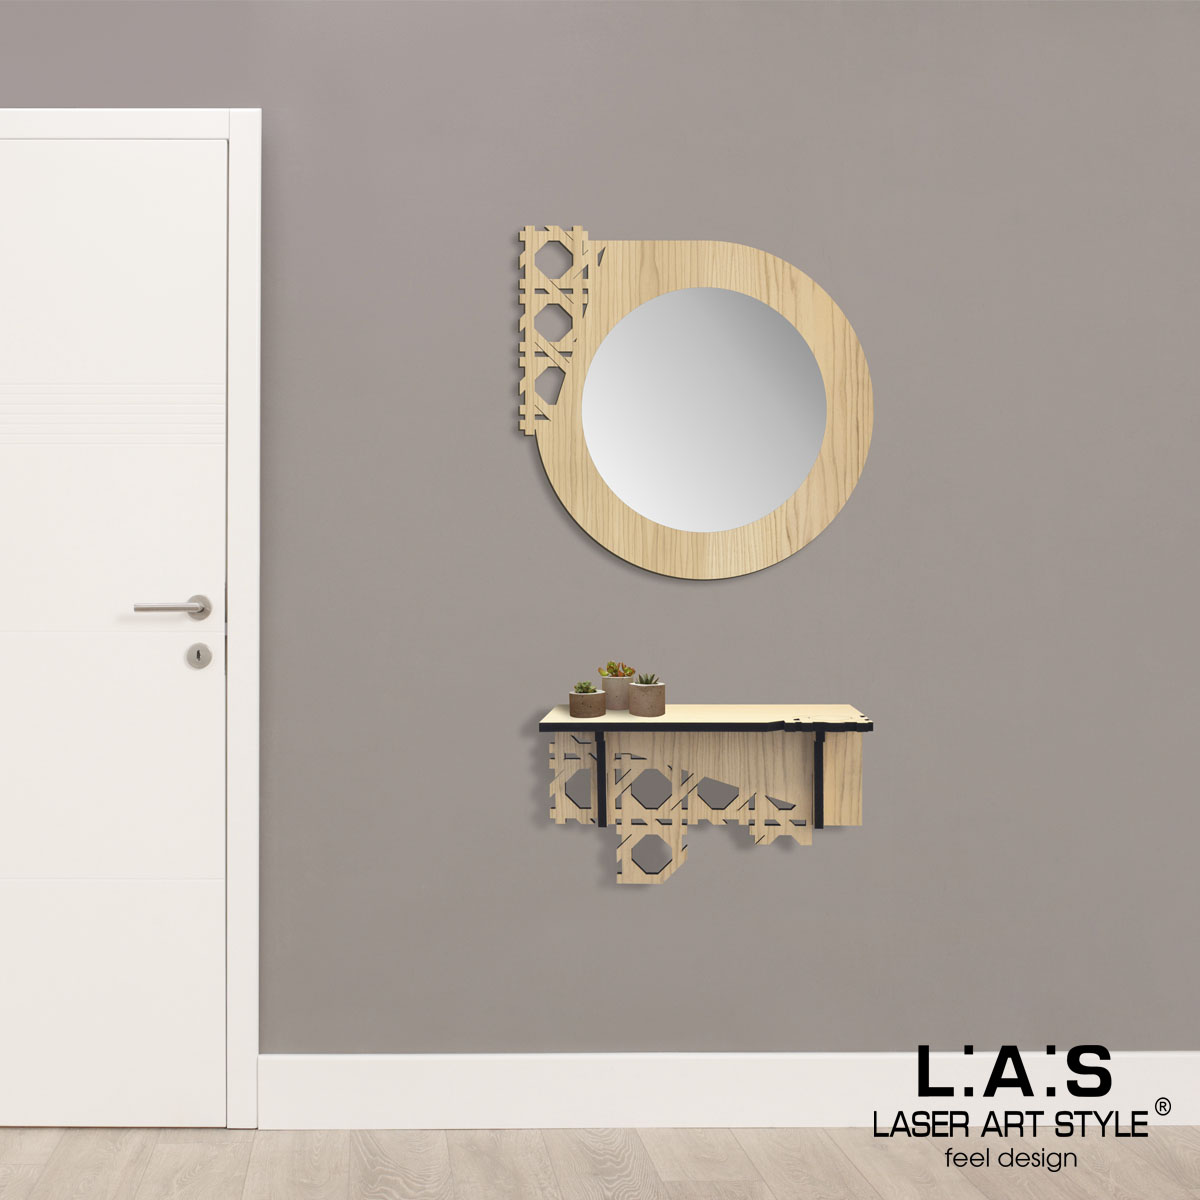 L:A:S - Laser Art Style - CONSOLLE INGRESSO DESIGN W-405 NATURAL WOOD